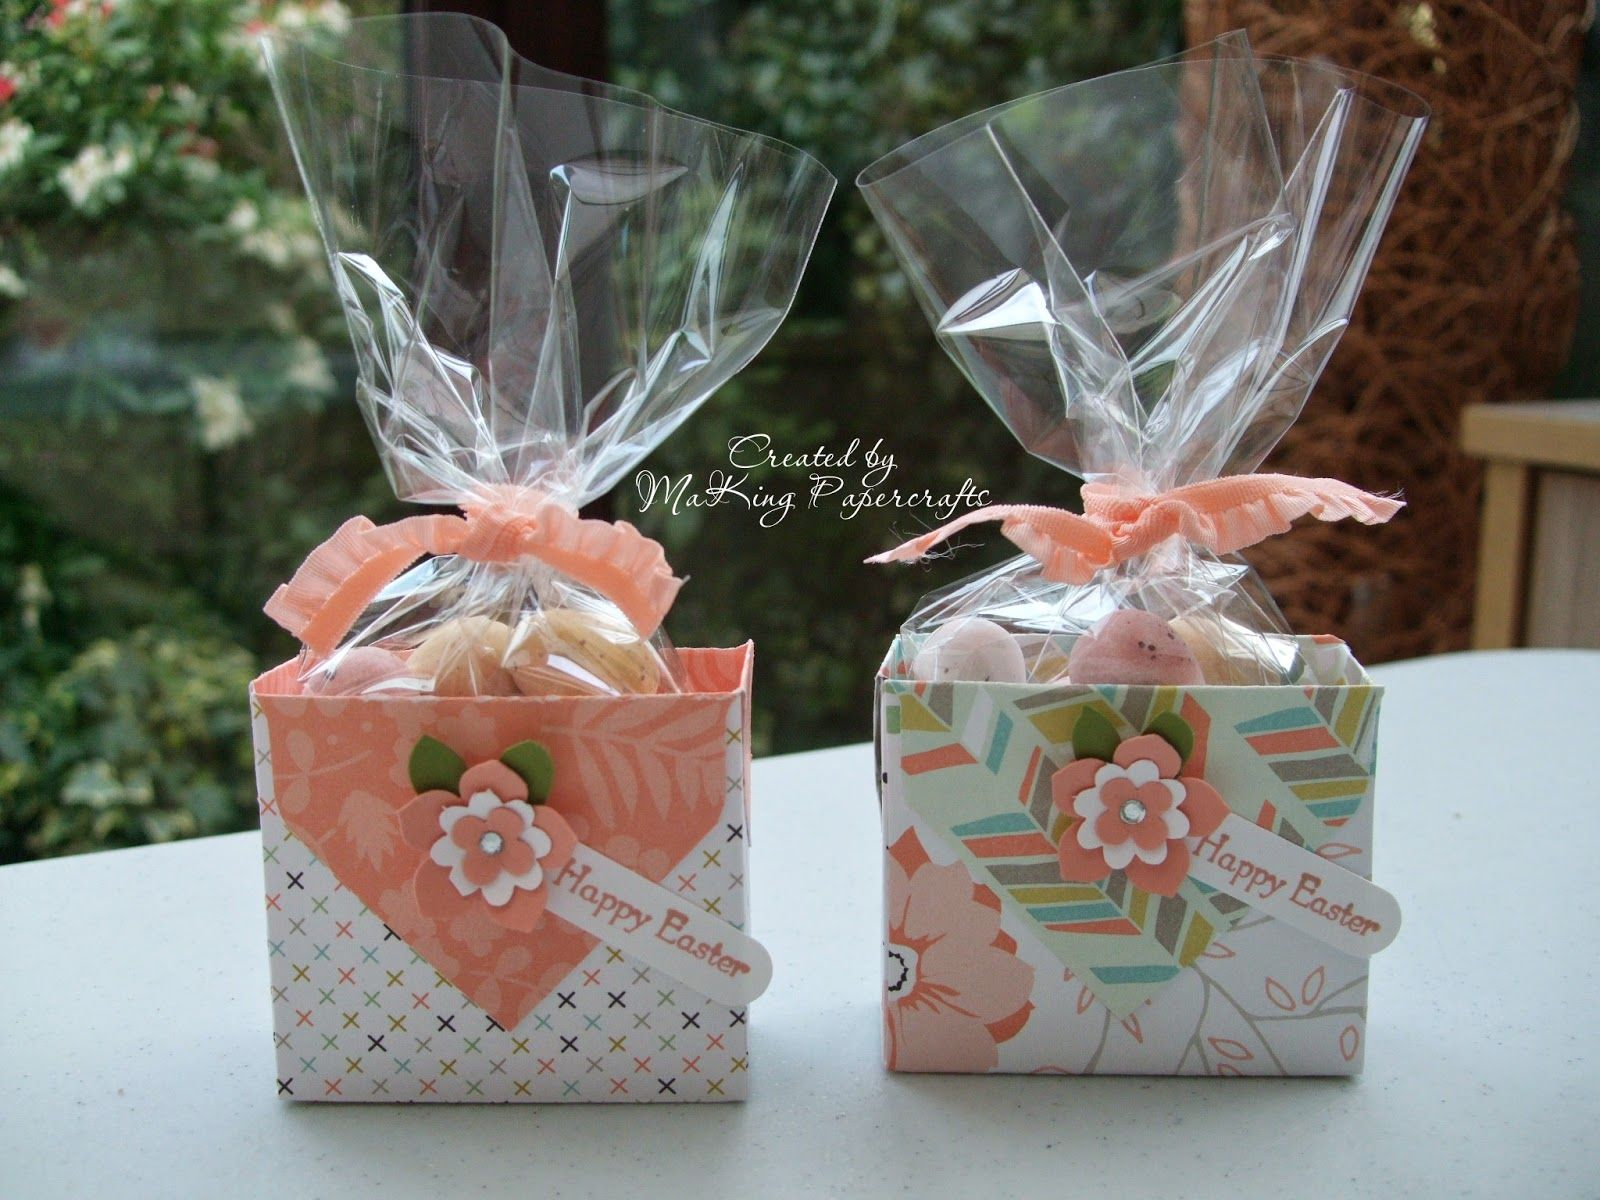 Today I have a couple of little treat boxes to show you that I made last week to give to a friend and her daughter. They are super easy t...